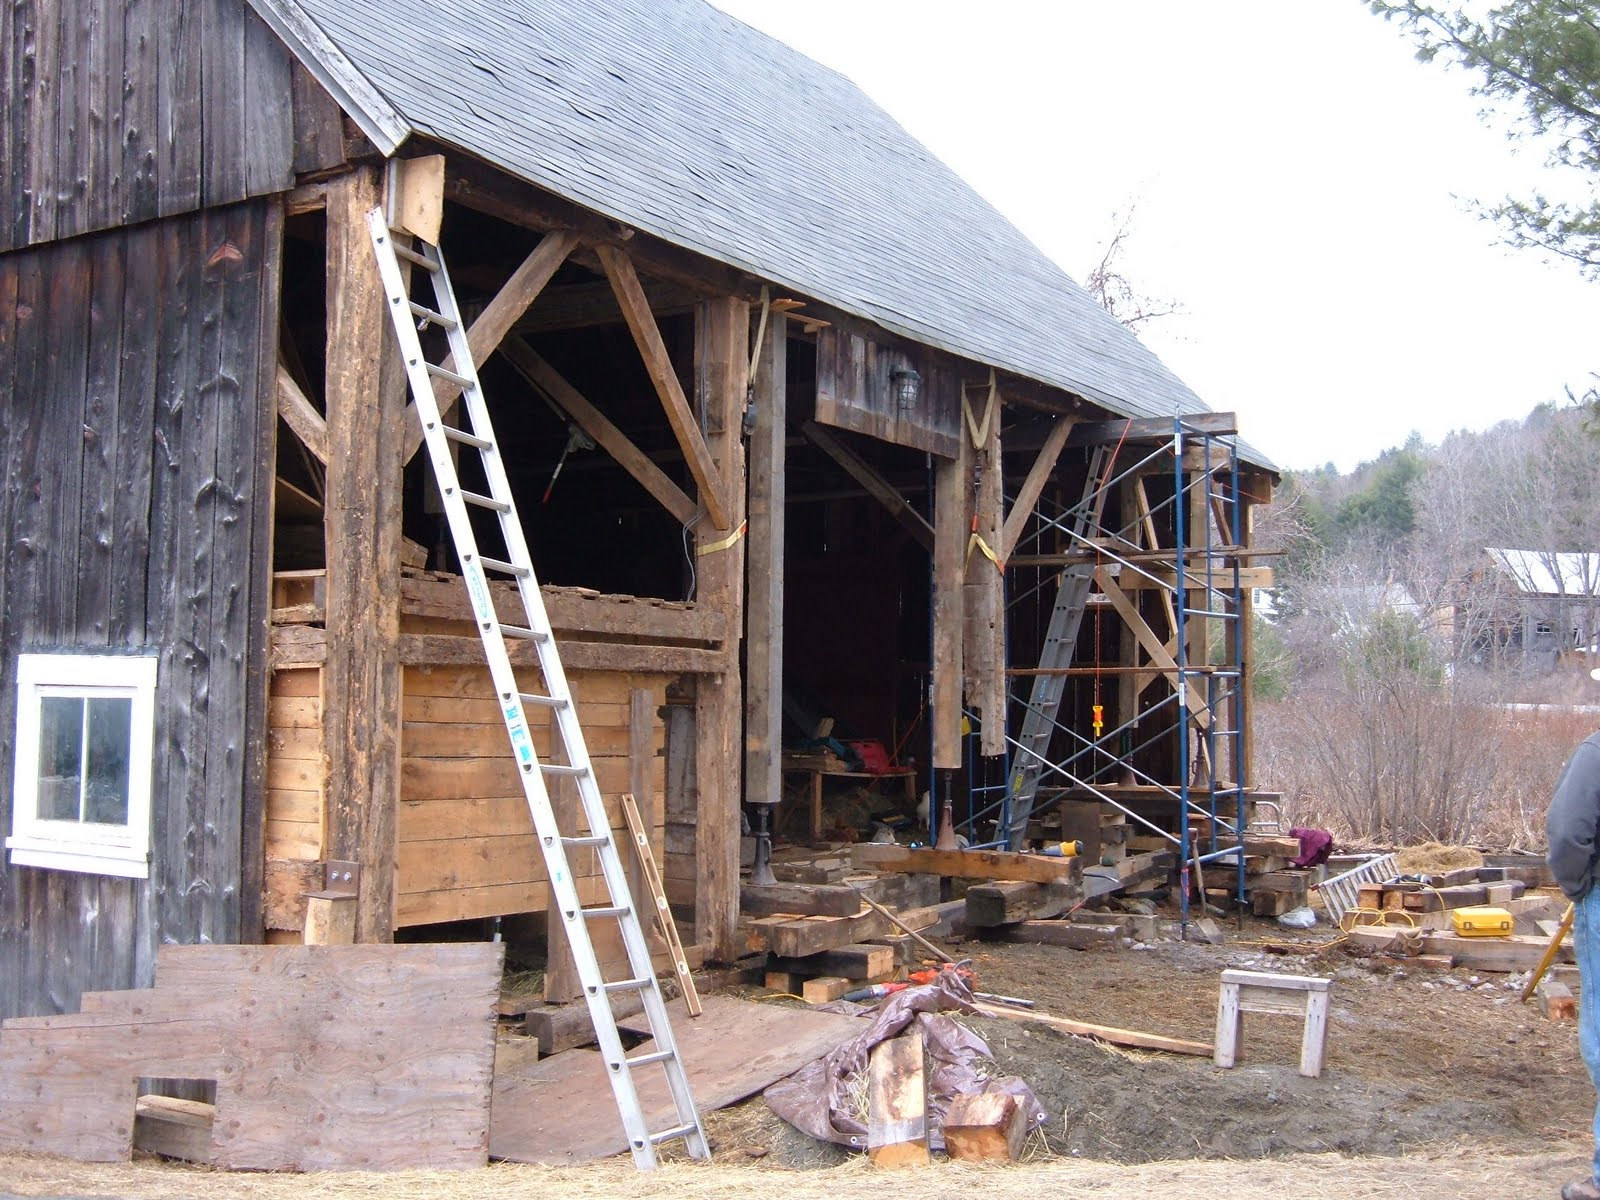 The post feet and step sill system of this late 1700's barn had extensive rot .